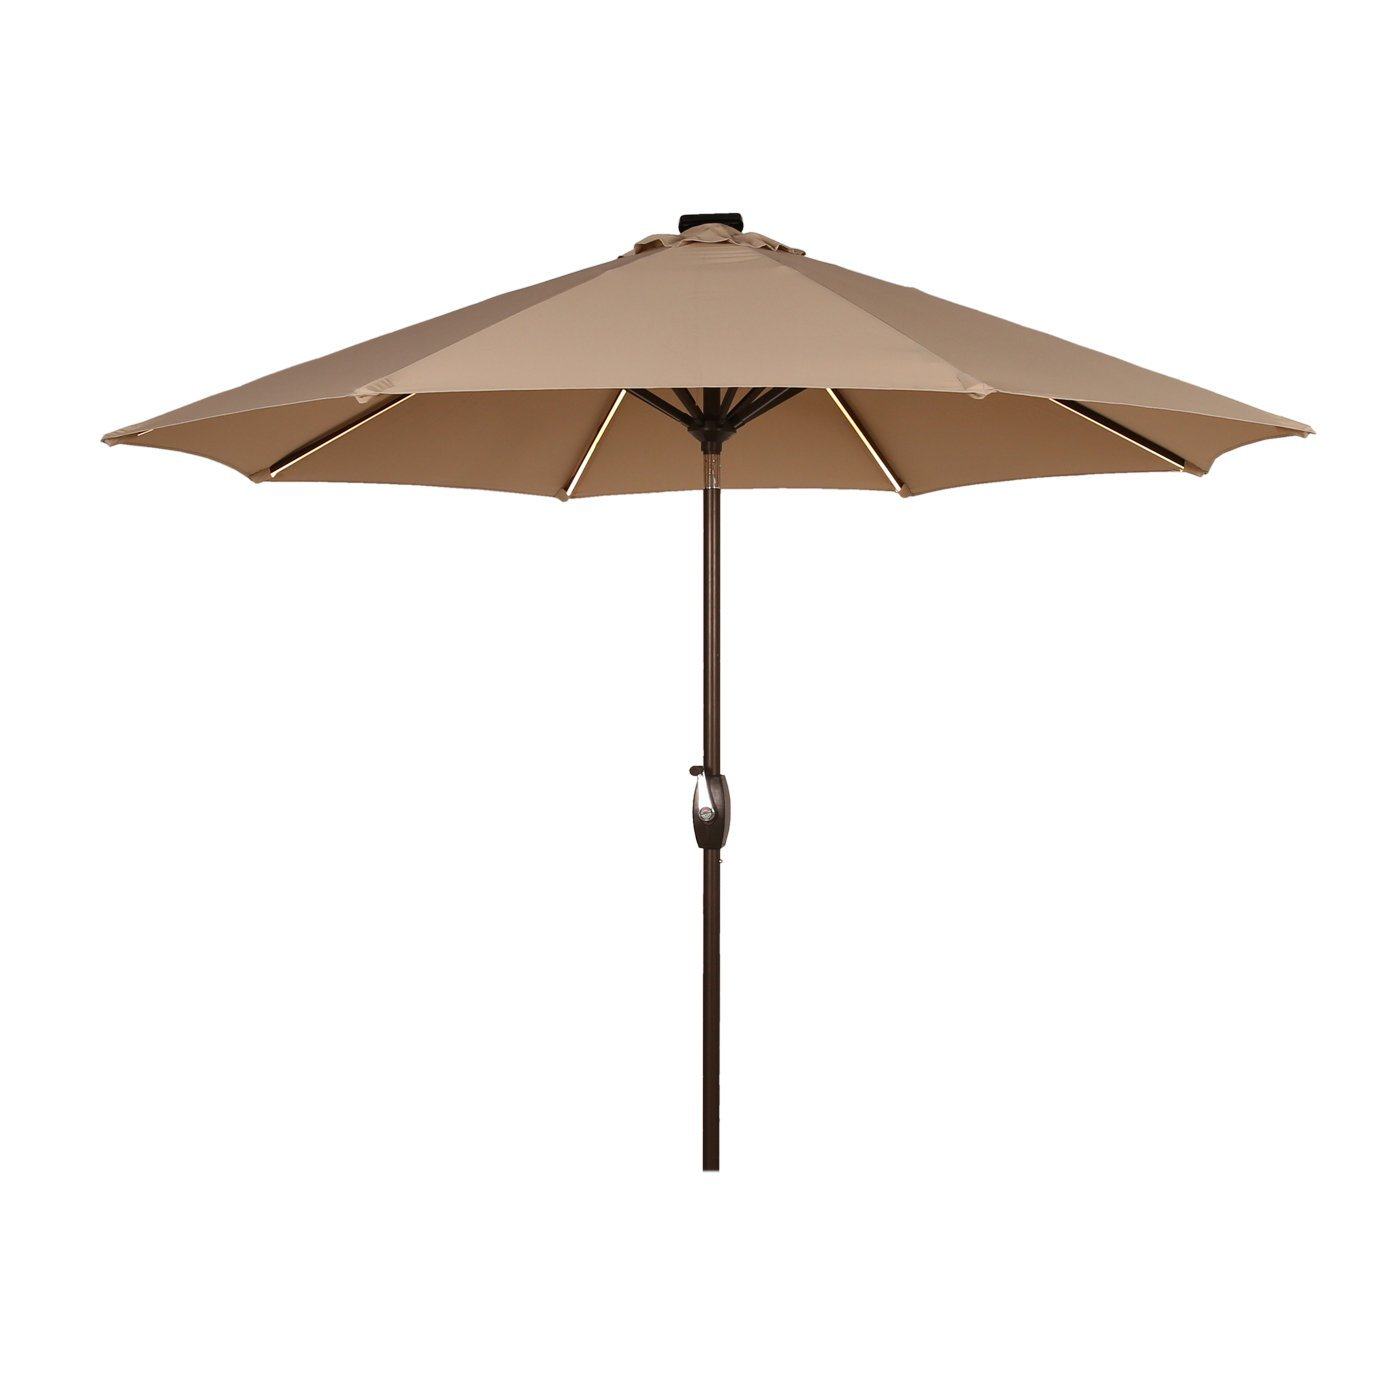 Ulax Furniture 9 Ft Solar Powered LED Lights Patio Umbrella Aluminum Outdoor Market Umbrella with Tilt and Crank system, Air Vent, 100% Polyester, Beige by Ulax furniture (Image #2)